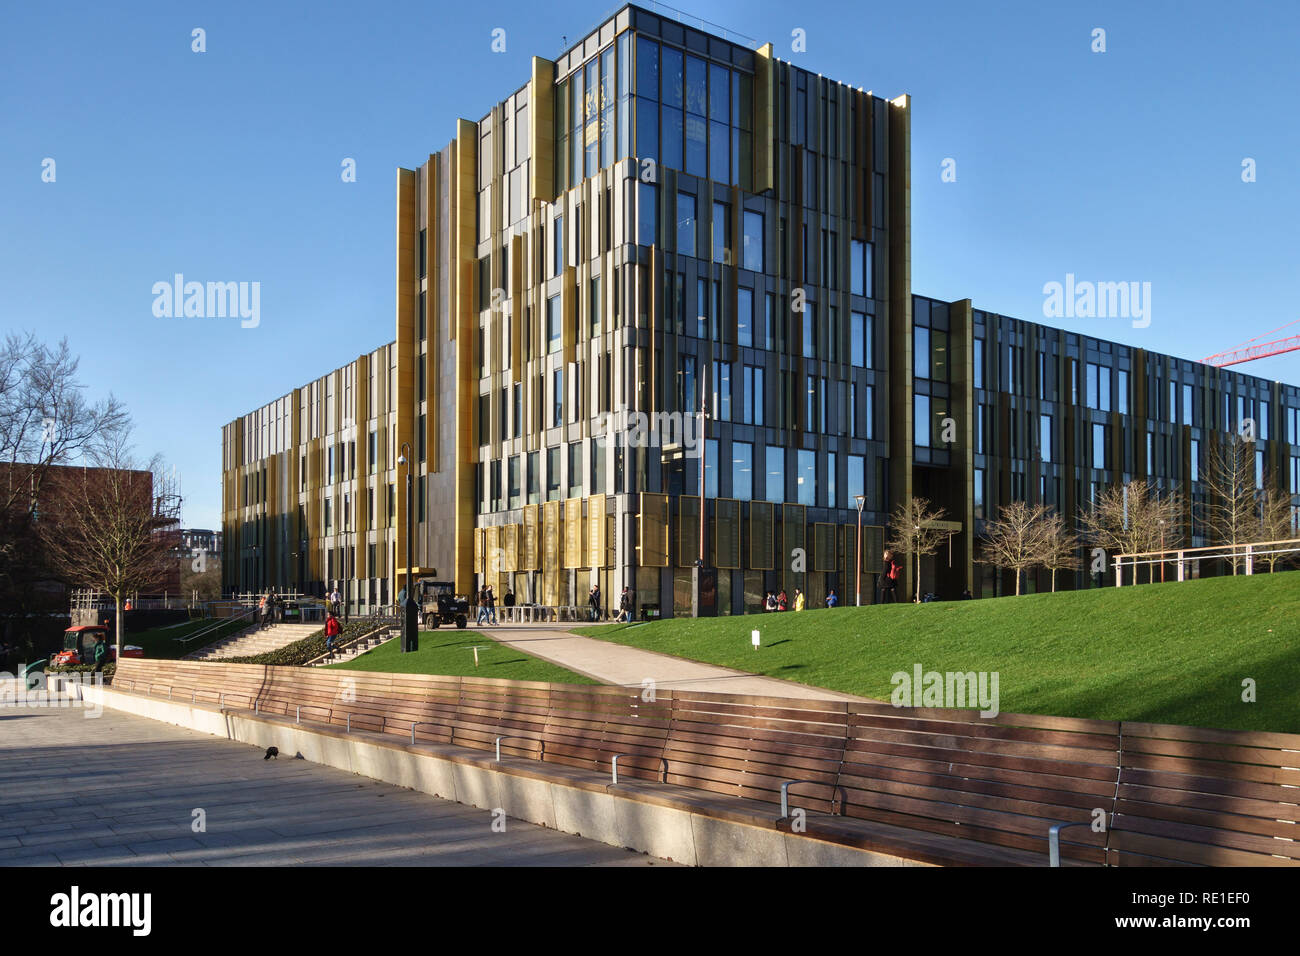 University of Birmingham, Edgbaston, UK. The new Main Library was designed by Associated Architects and opened in 2016 - Stock Image